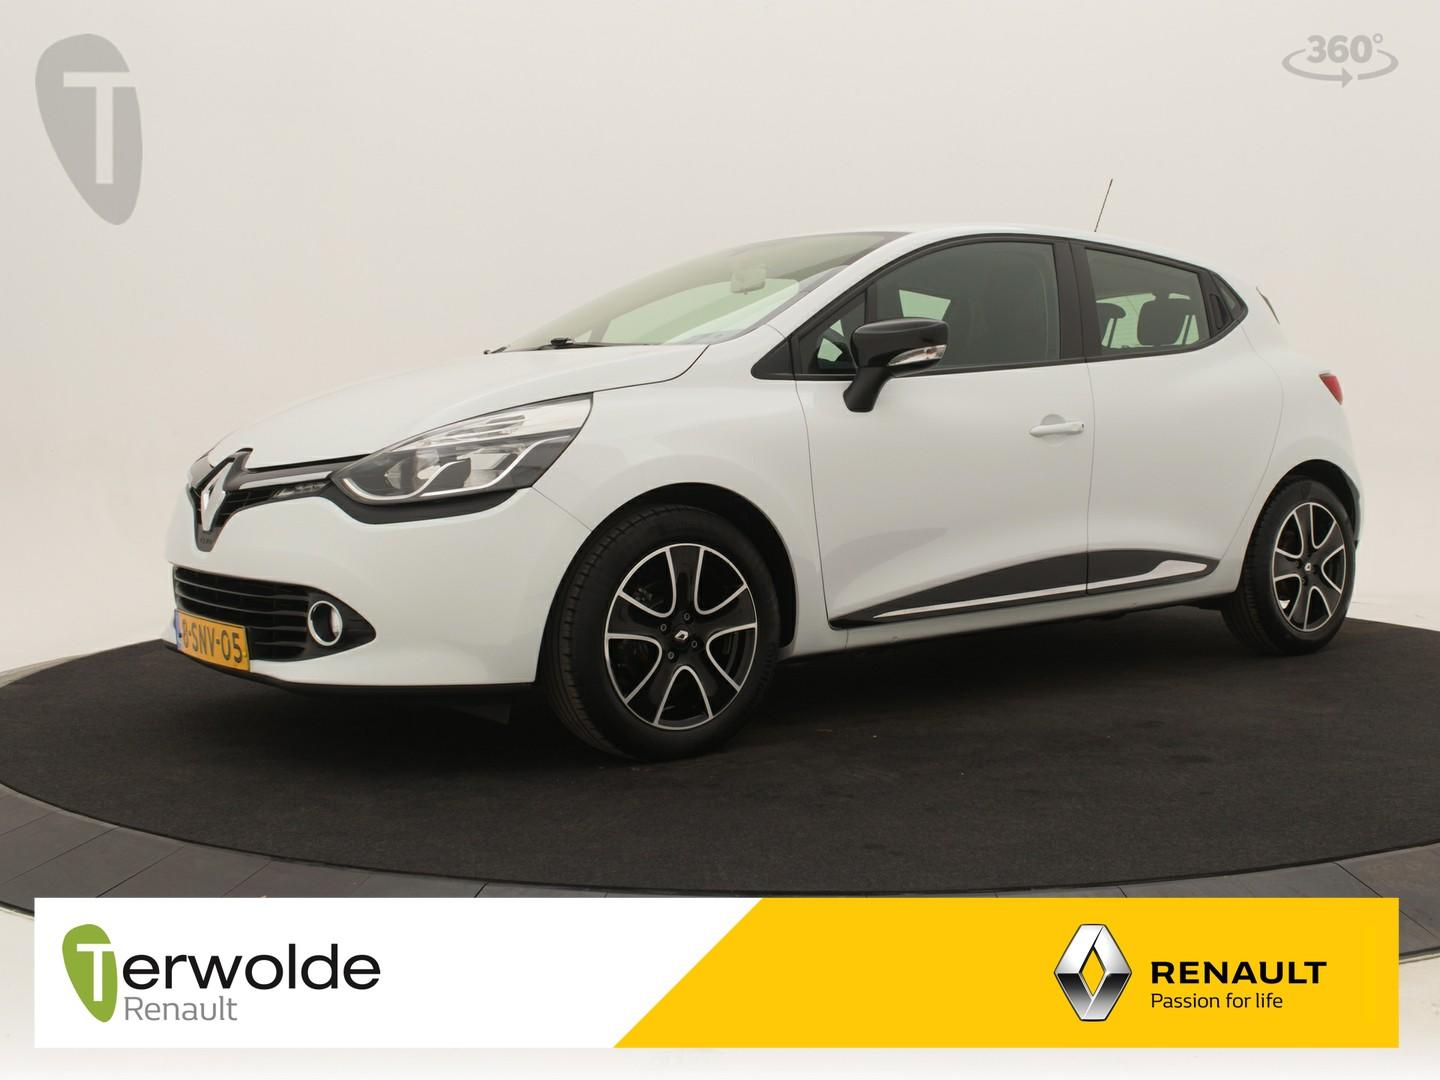 Renault Clio 90pk tce expression airco i full map navigatie i cruise control * rijklaar *